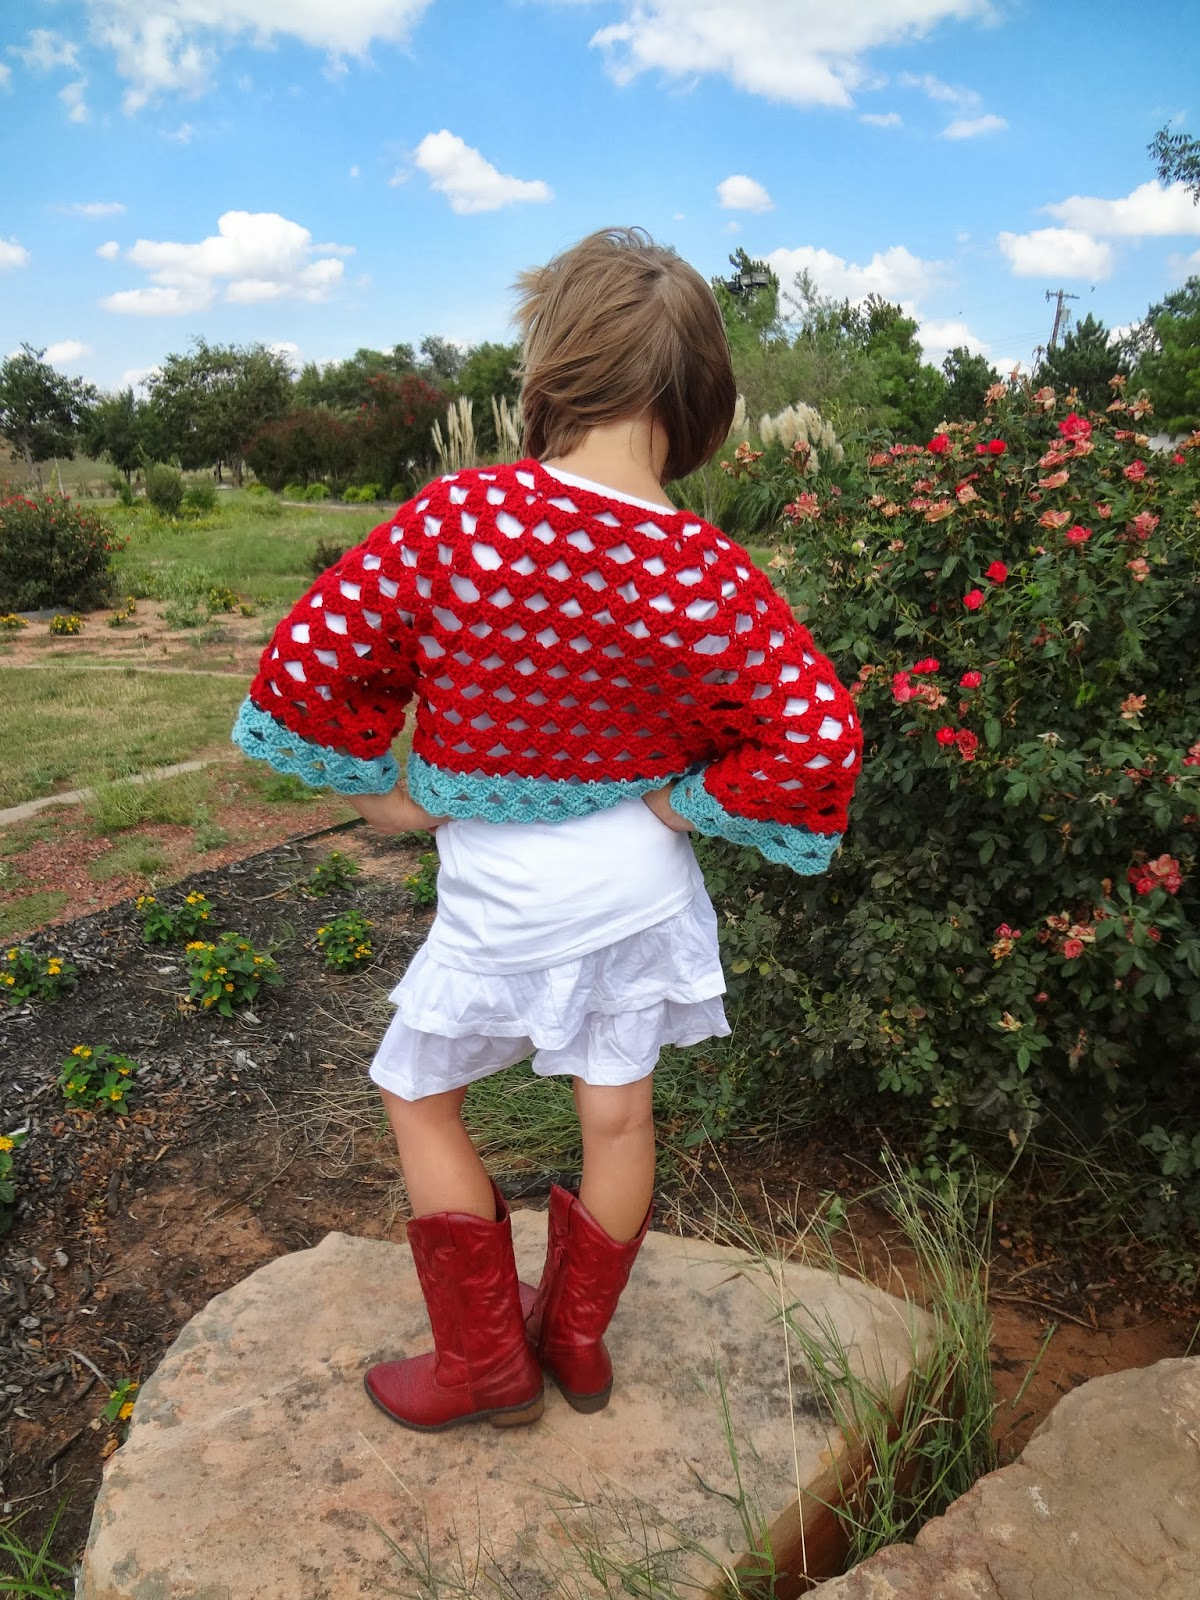 Back view of a red and aqua crochet cardigan on a young girl standing in a garden.